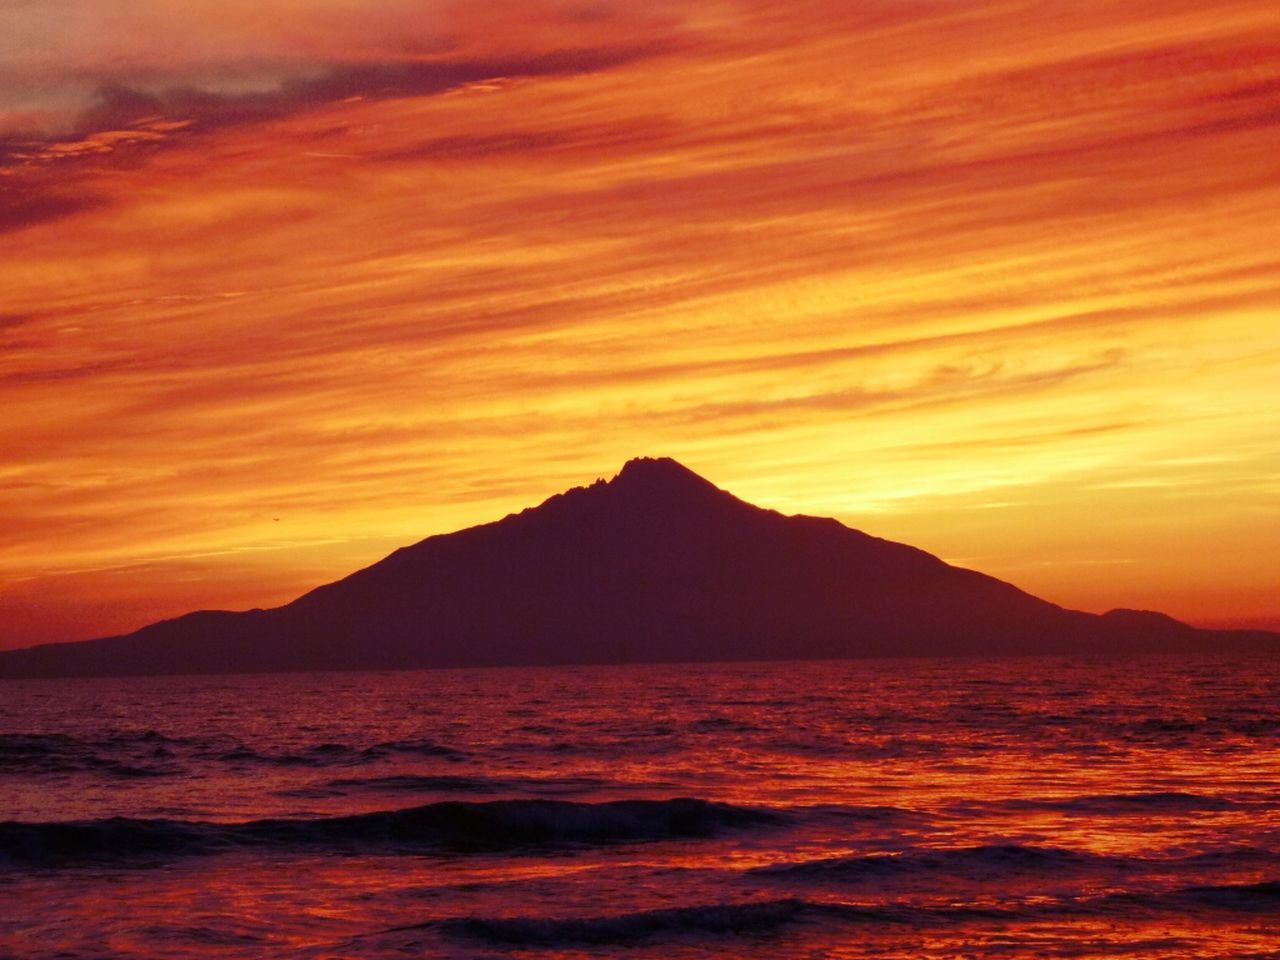 Scenic view of sea against mountain during sunset